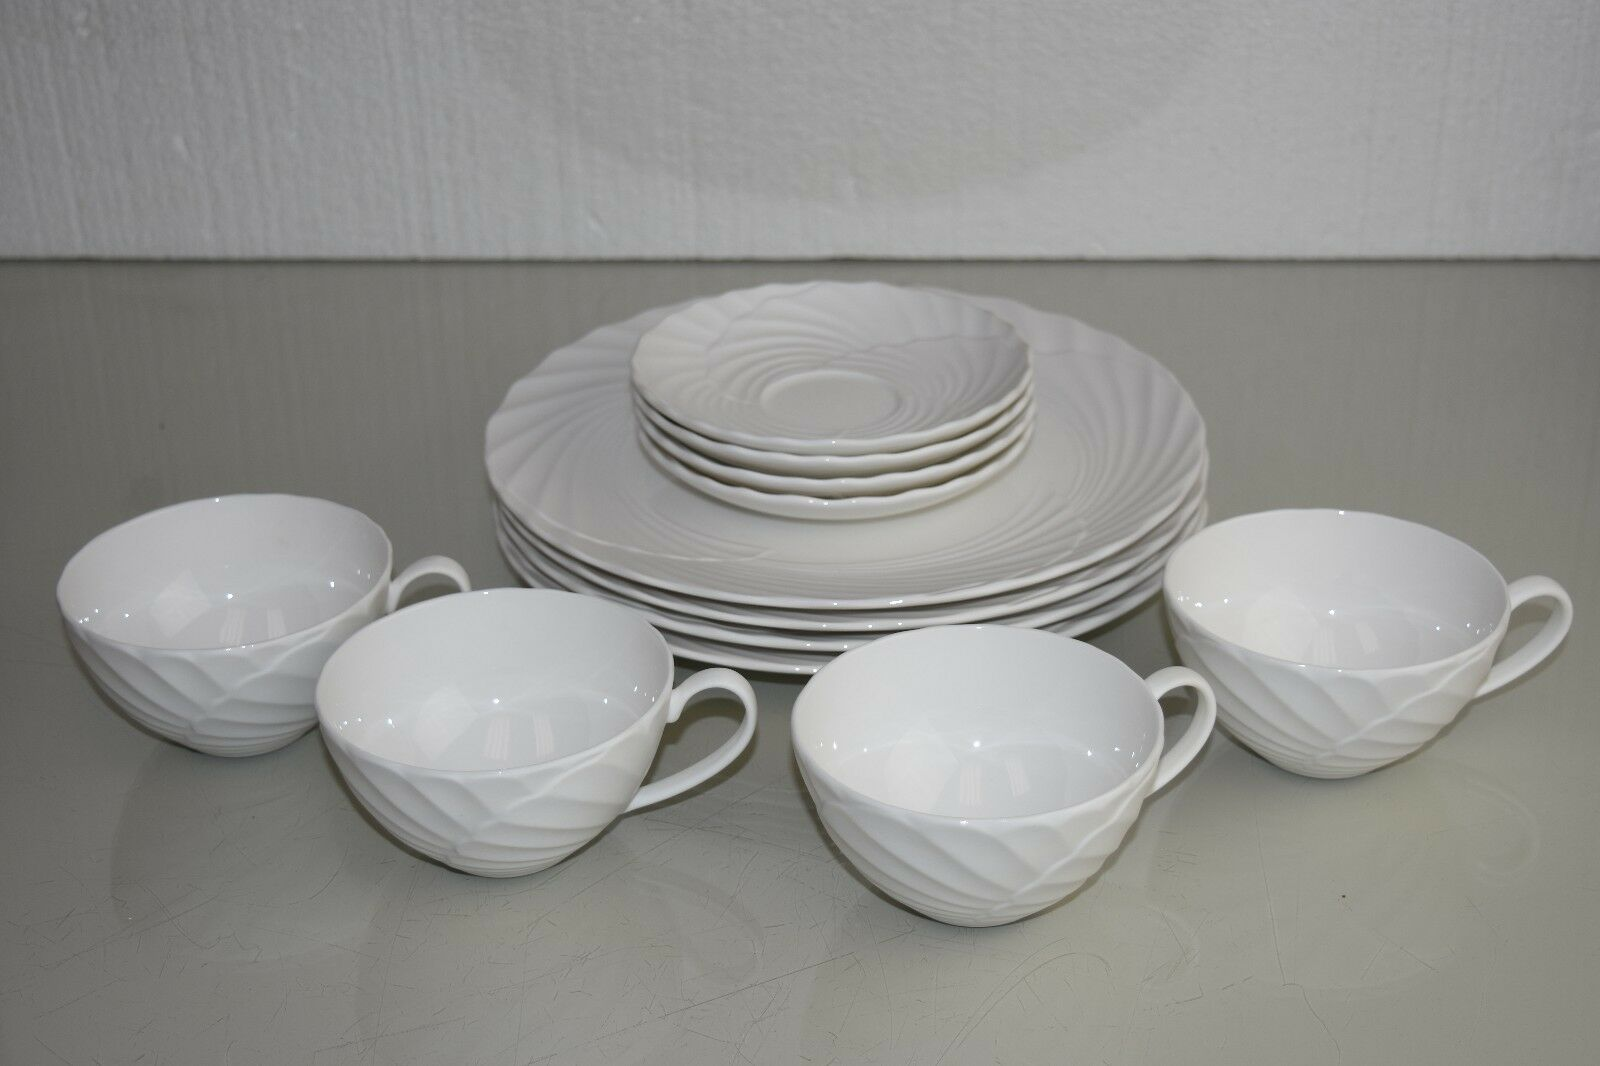 NEW Lenox Marchesa Weiß Pleated Swirl 12 12 12 pc SET 4 Dinner Plate s 4 Saucer 4 Cup cddc94